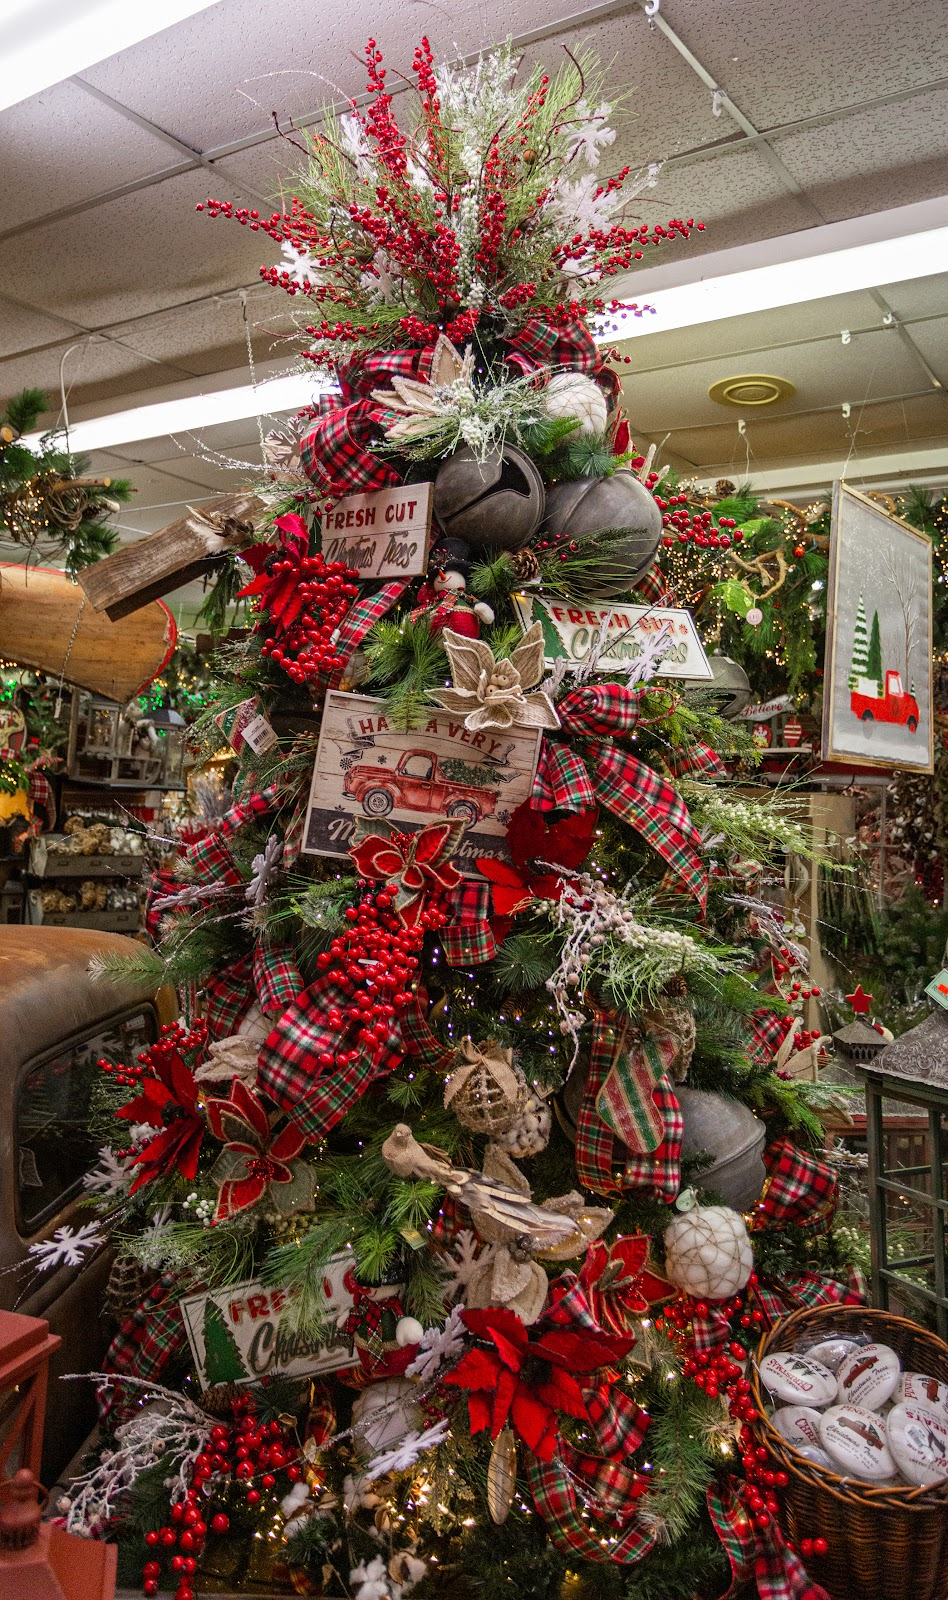 Christmas Outdoor Decorations 2021 Top Trends In Christmas Home Decor For 2020 Decorator S Warehouse